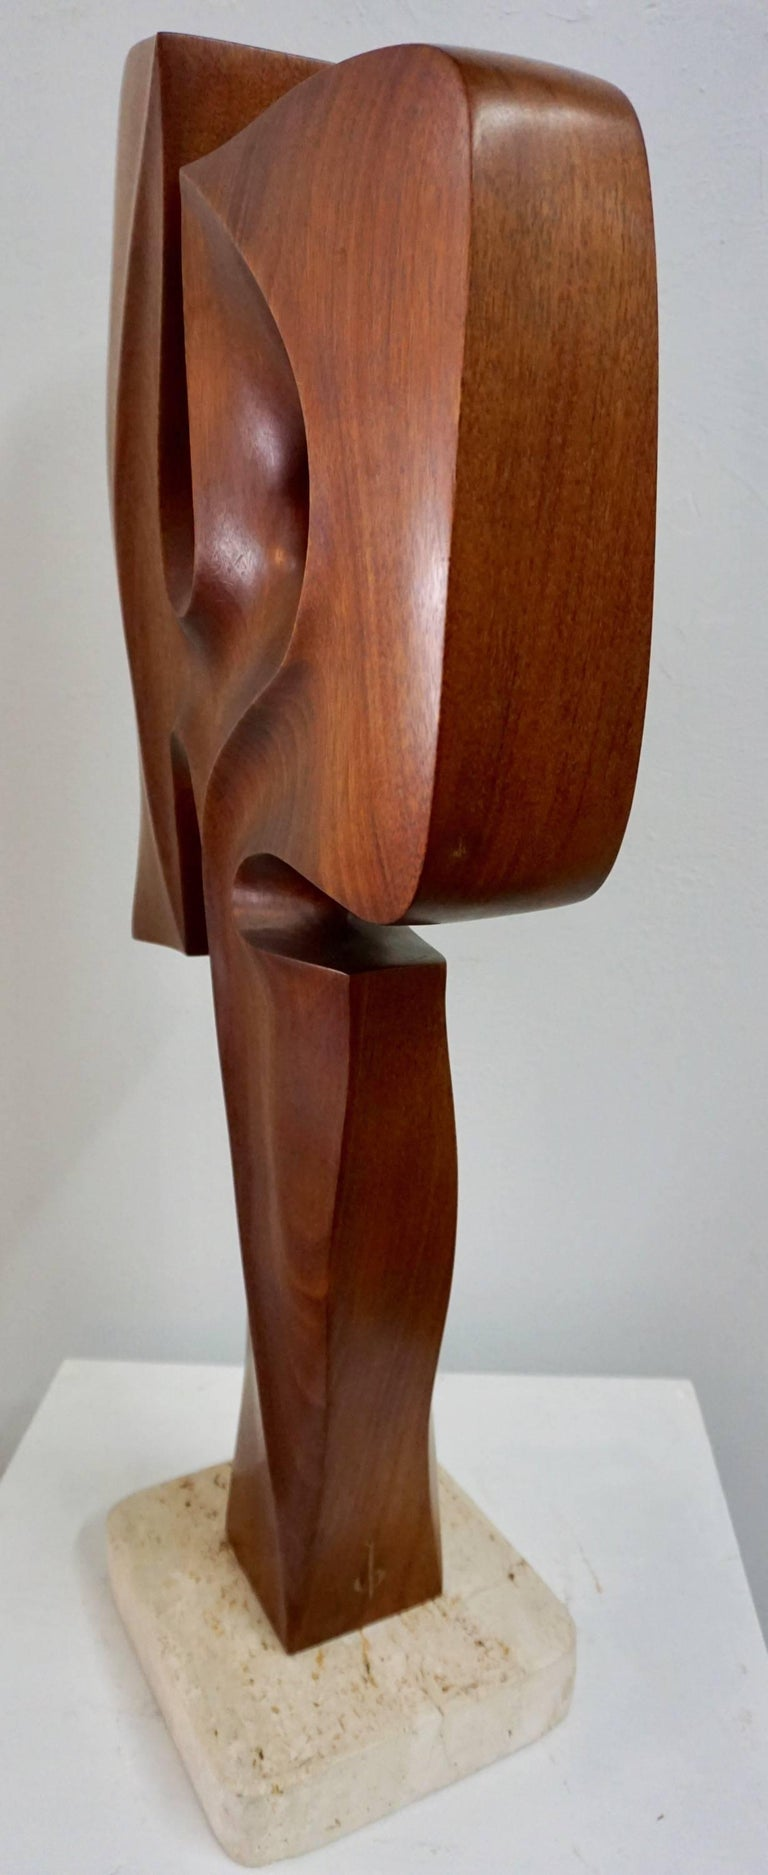 Abstract Organic Wood Sculpture by Henry Moretti 7